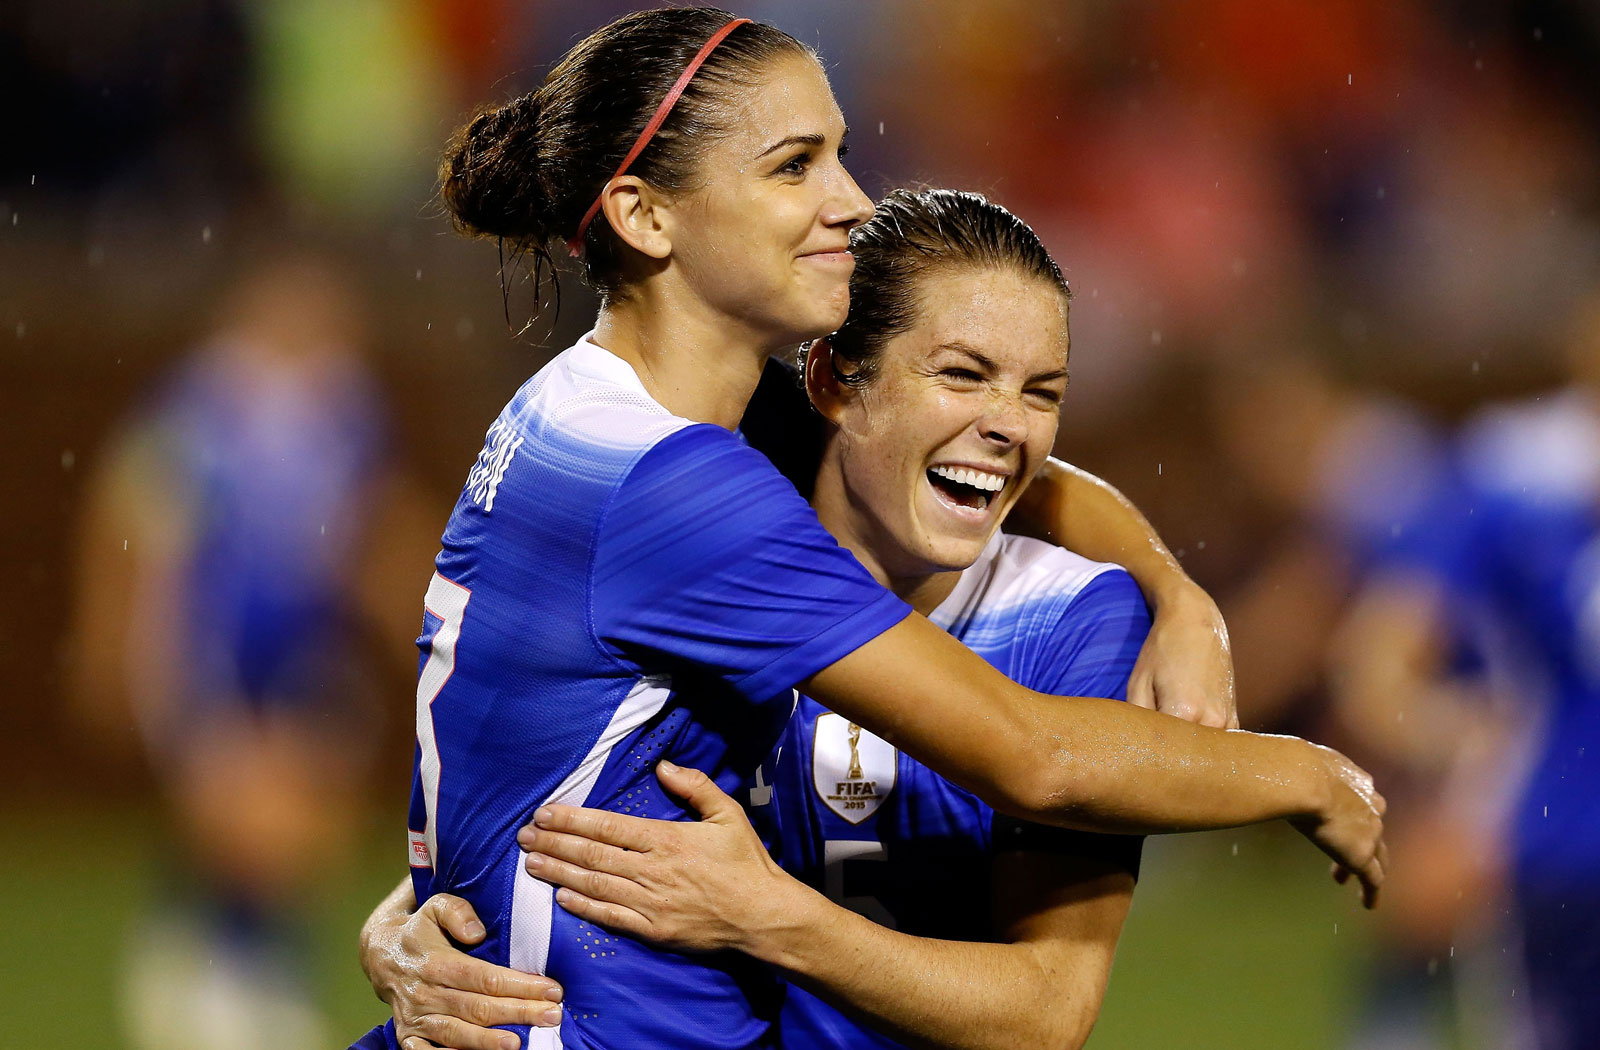 Alex Morgan and Kelley O'Hara celebrate during a second rout of Costa Rica in three days, this one a 7-2 win in Chattanooga, Tennessee.